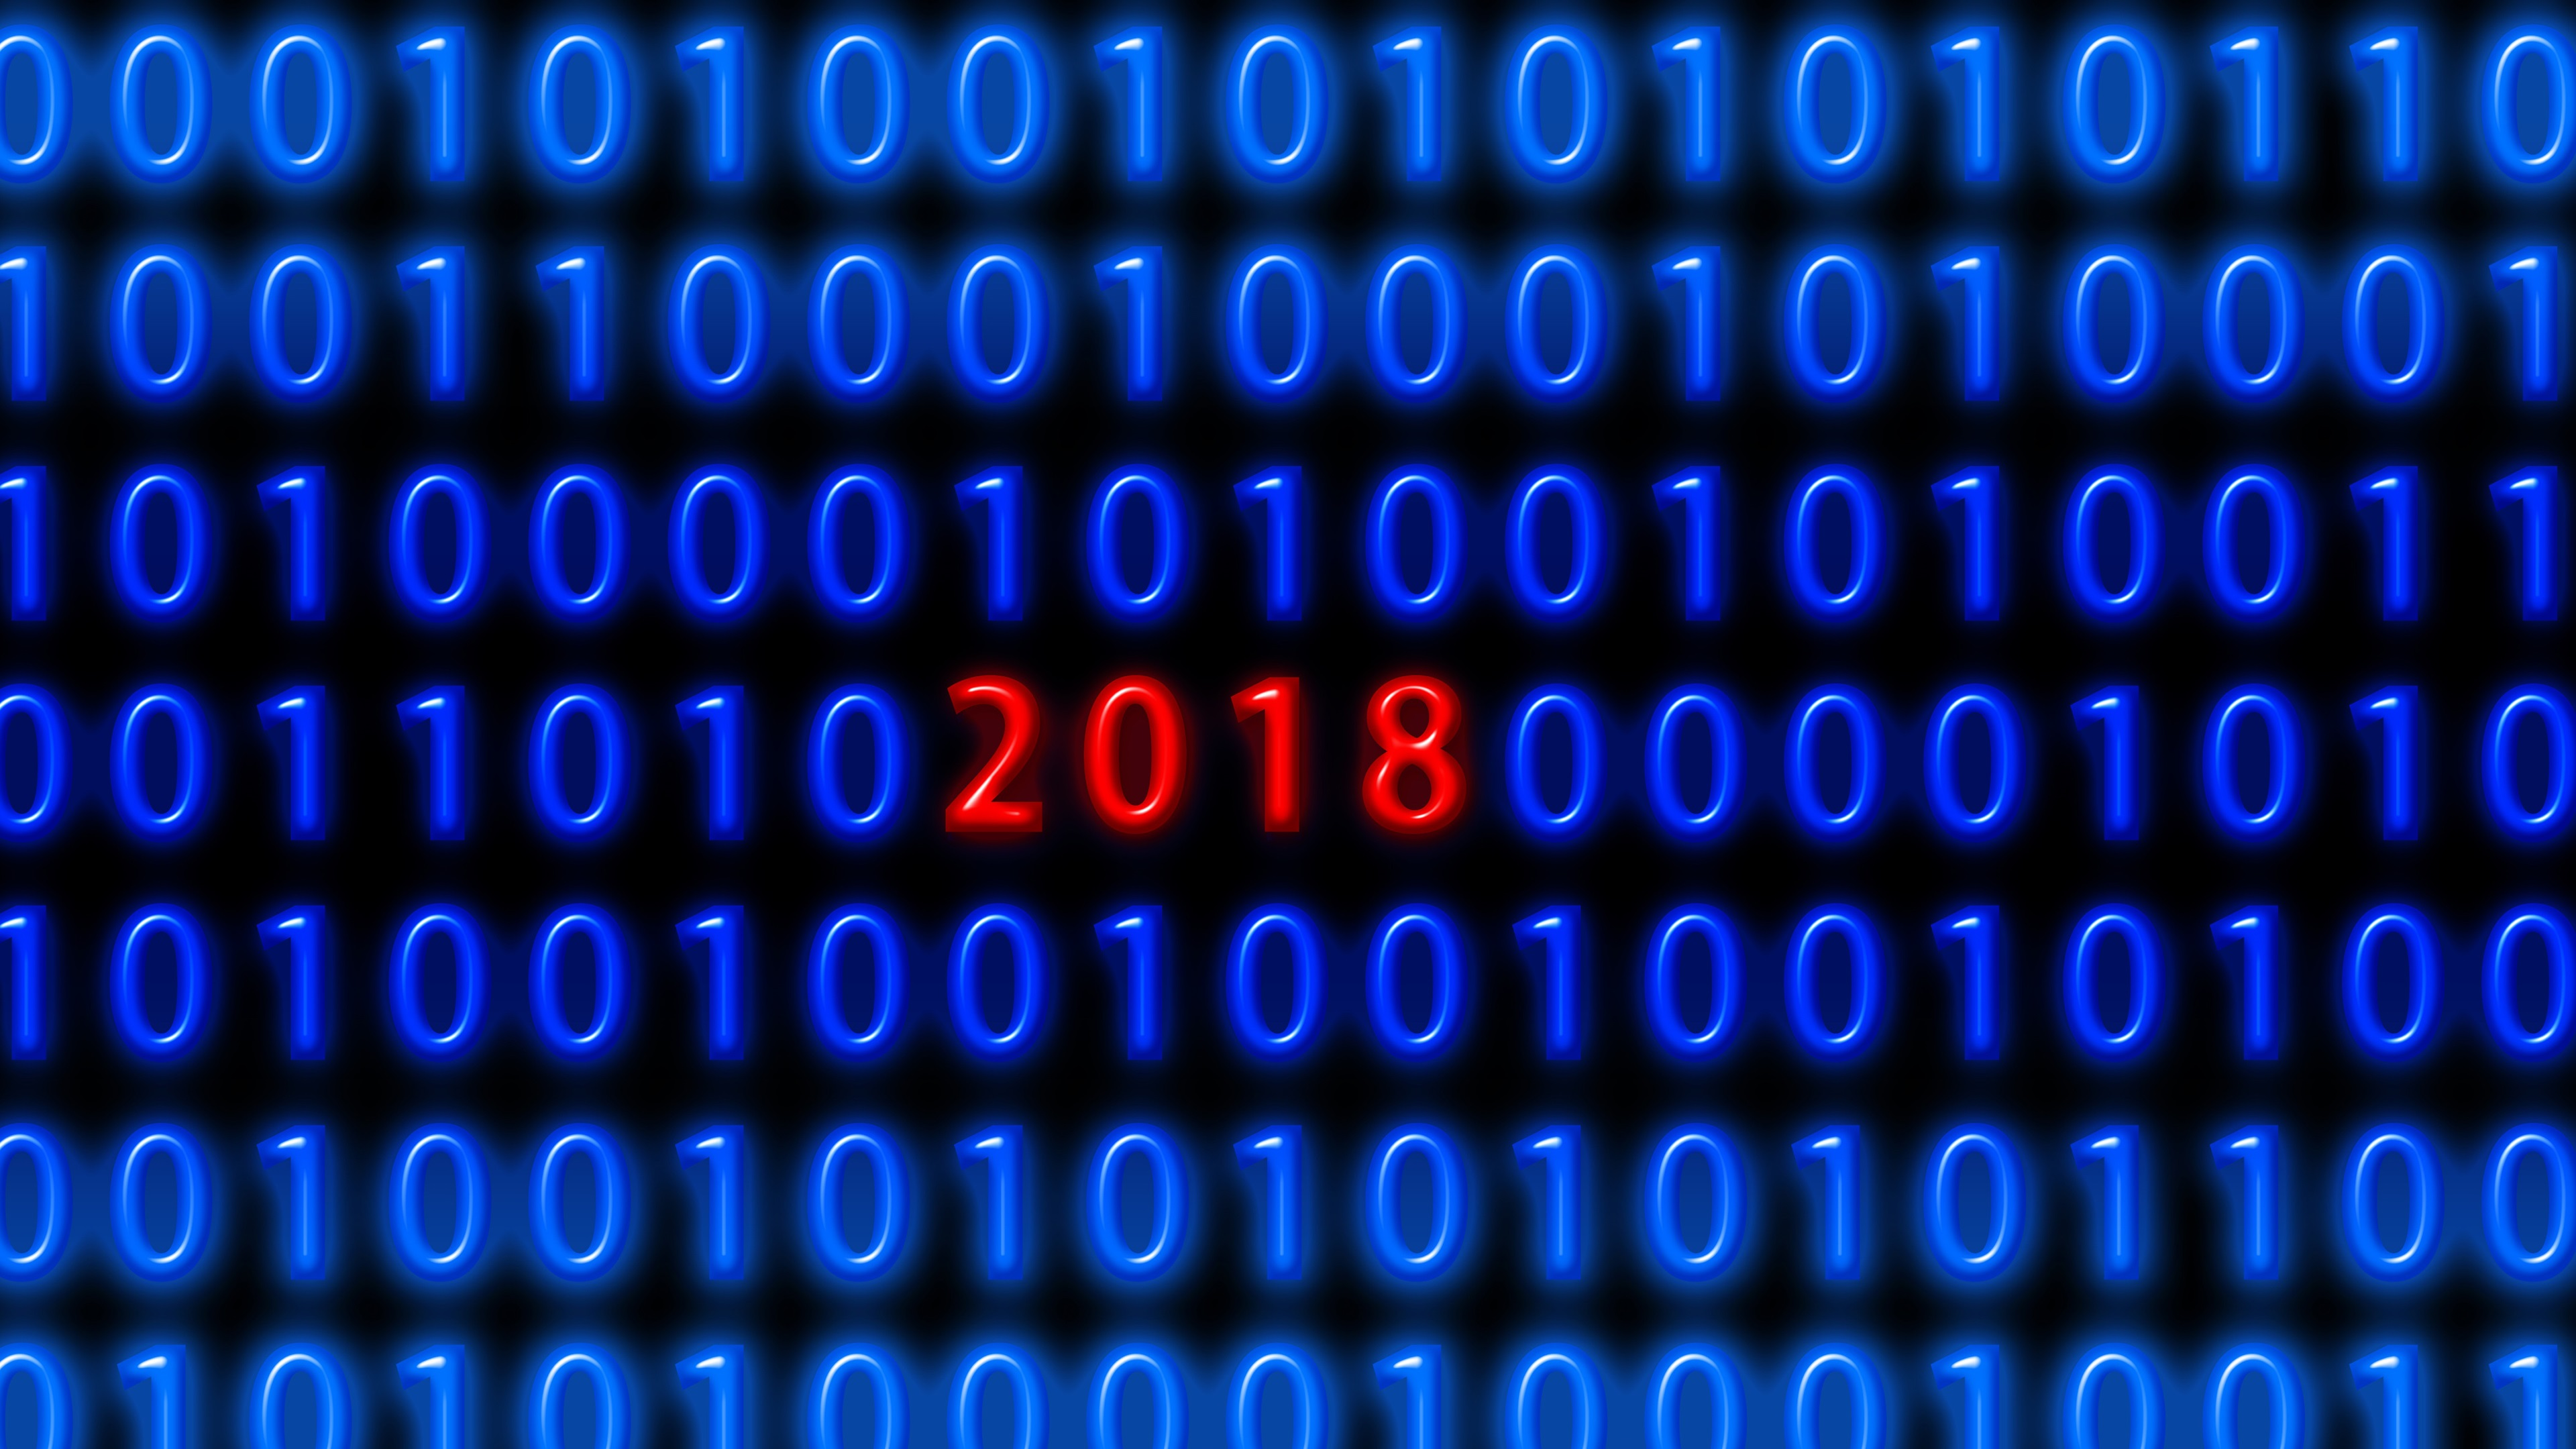 Wallpaper Blue Binary Code Red 2018 New Year 3840x2160 Uhd